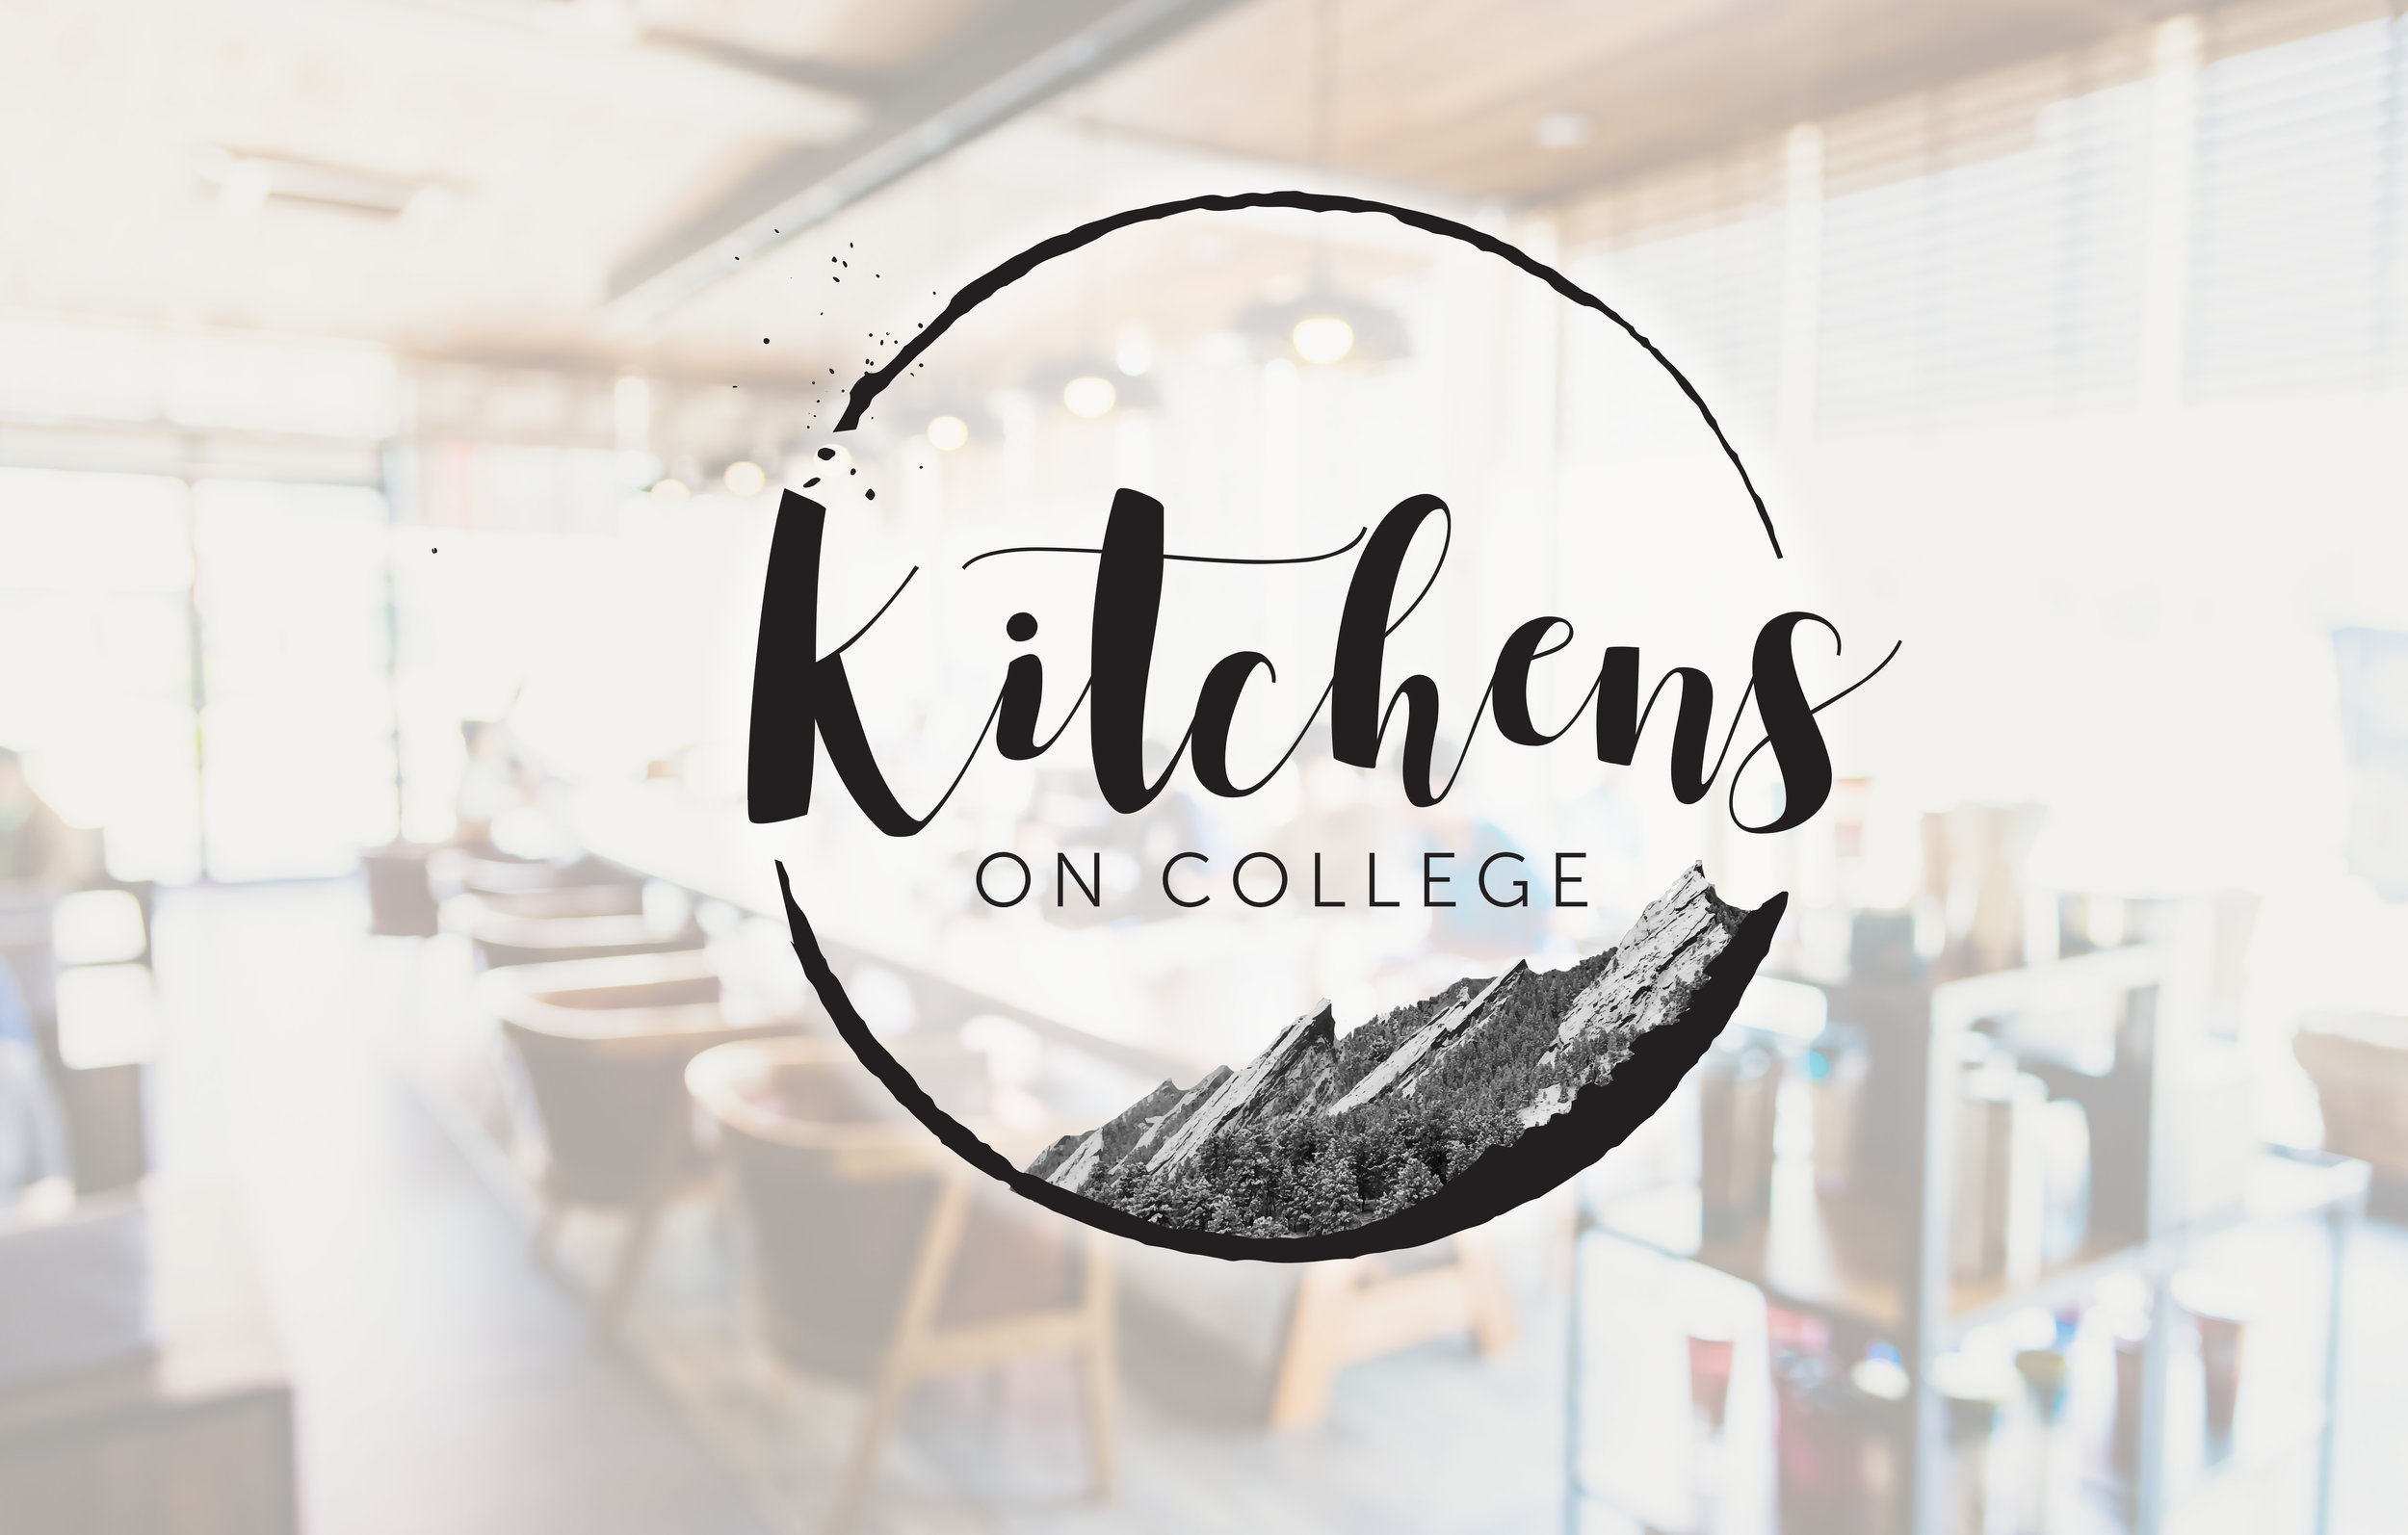 The Kitchens on College